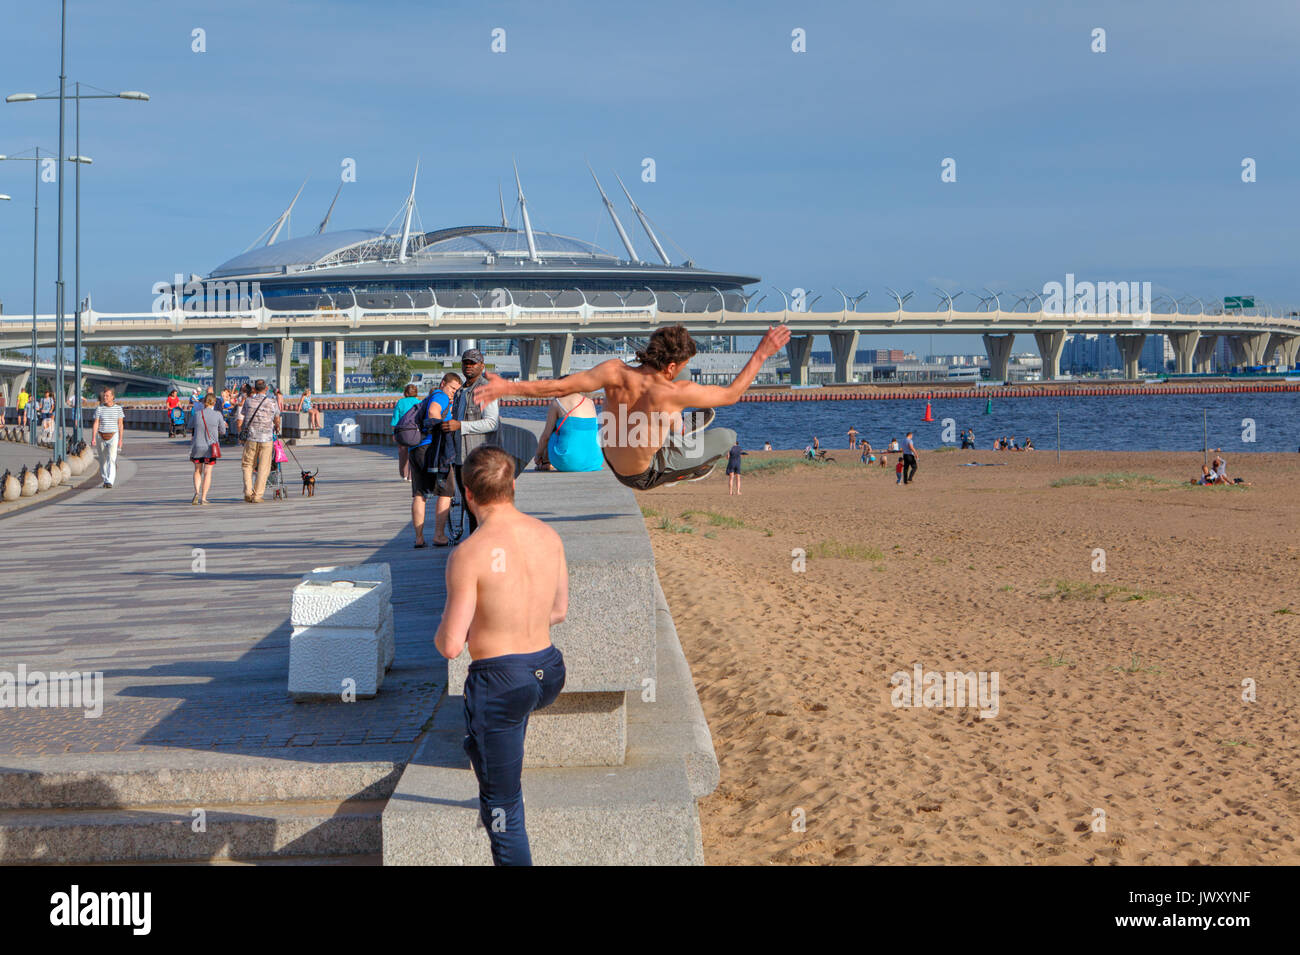 St. Petersburg, Russia - August 1, 2017: Park 300th anniversary of St. Petersburg, young man practicing parkour in the city park. - Stock Image